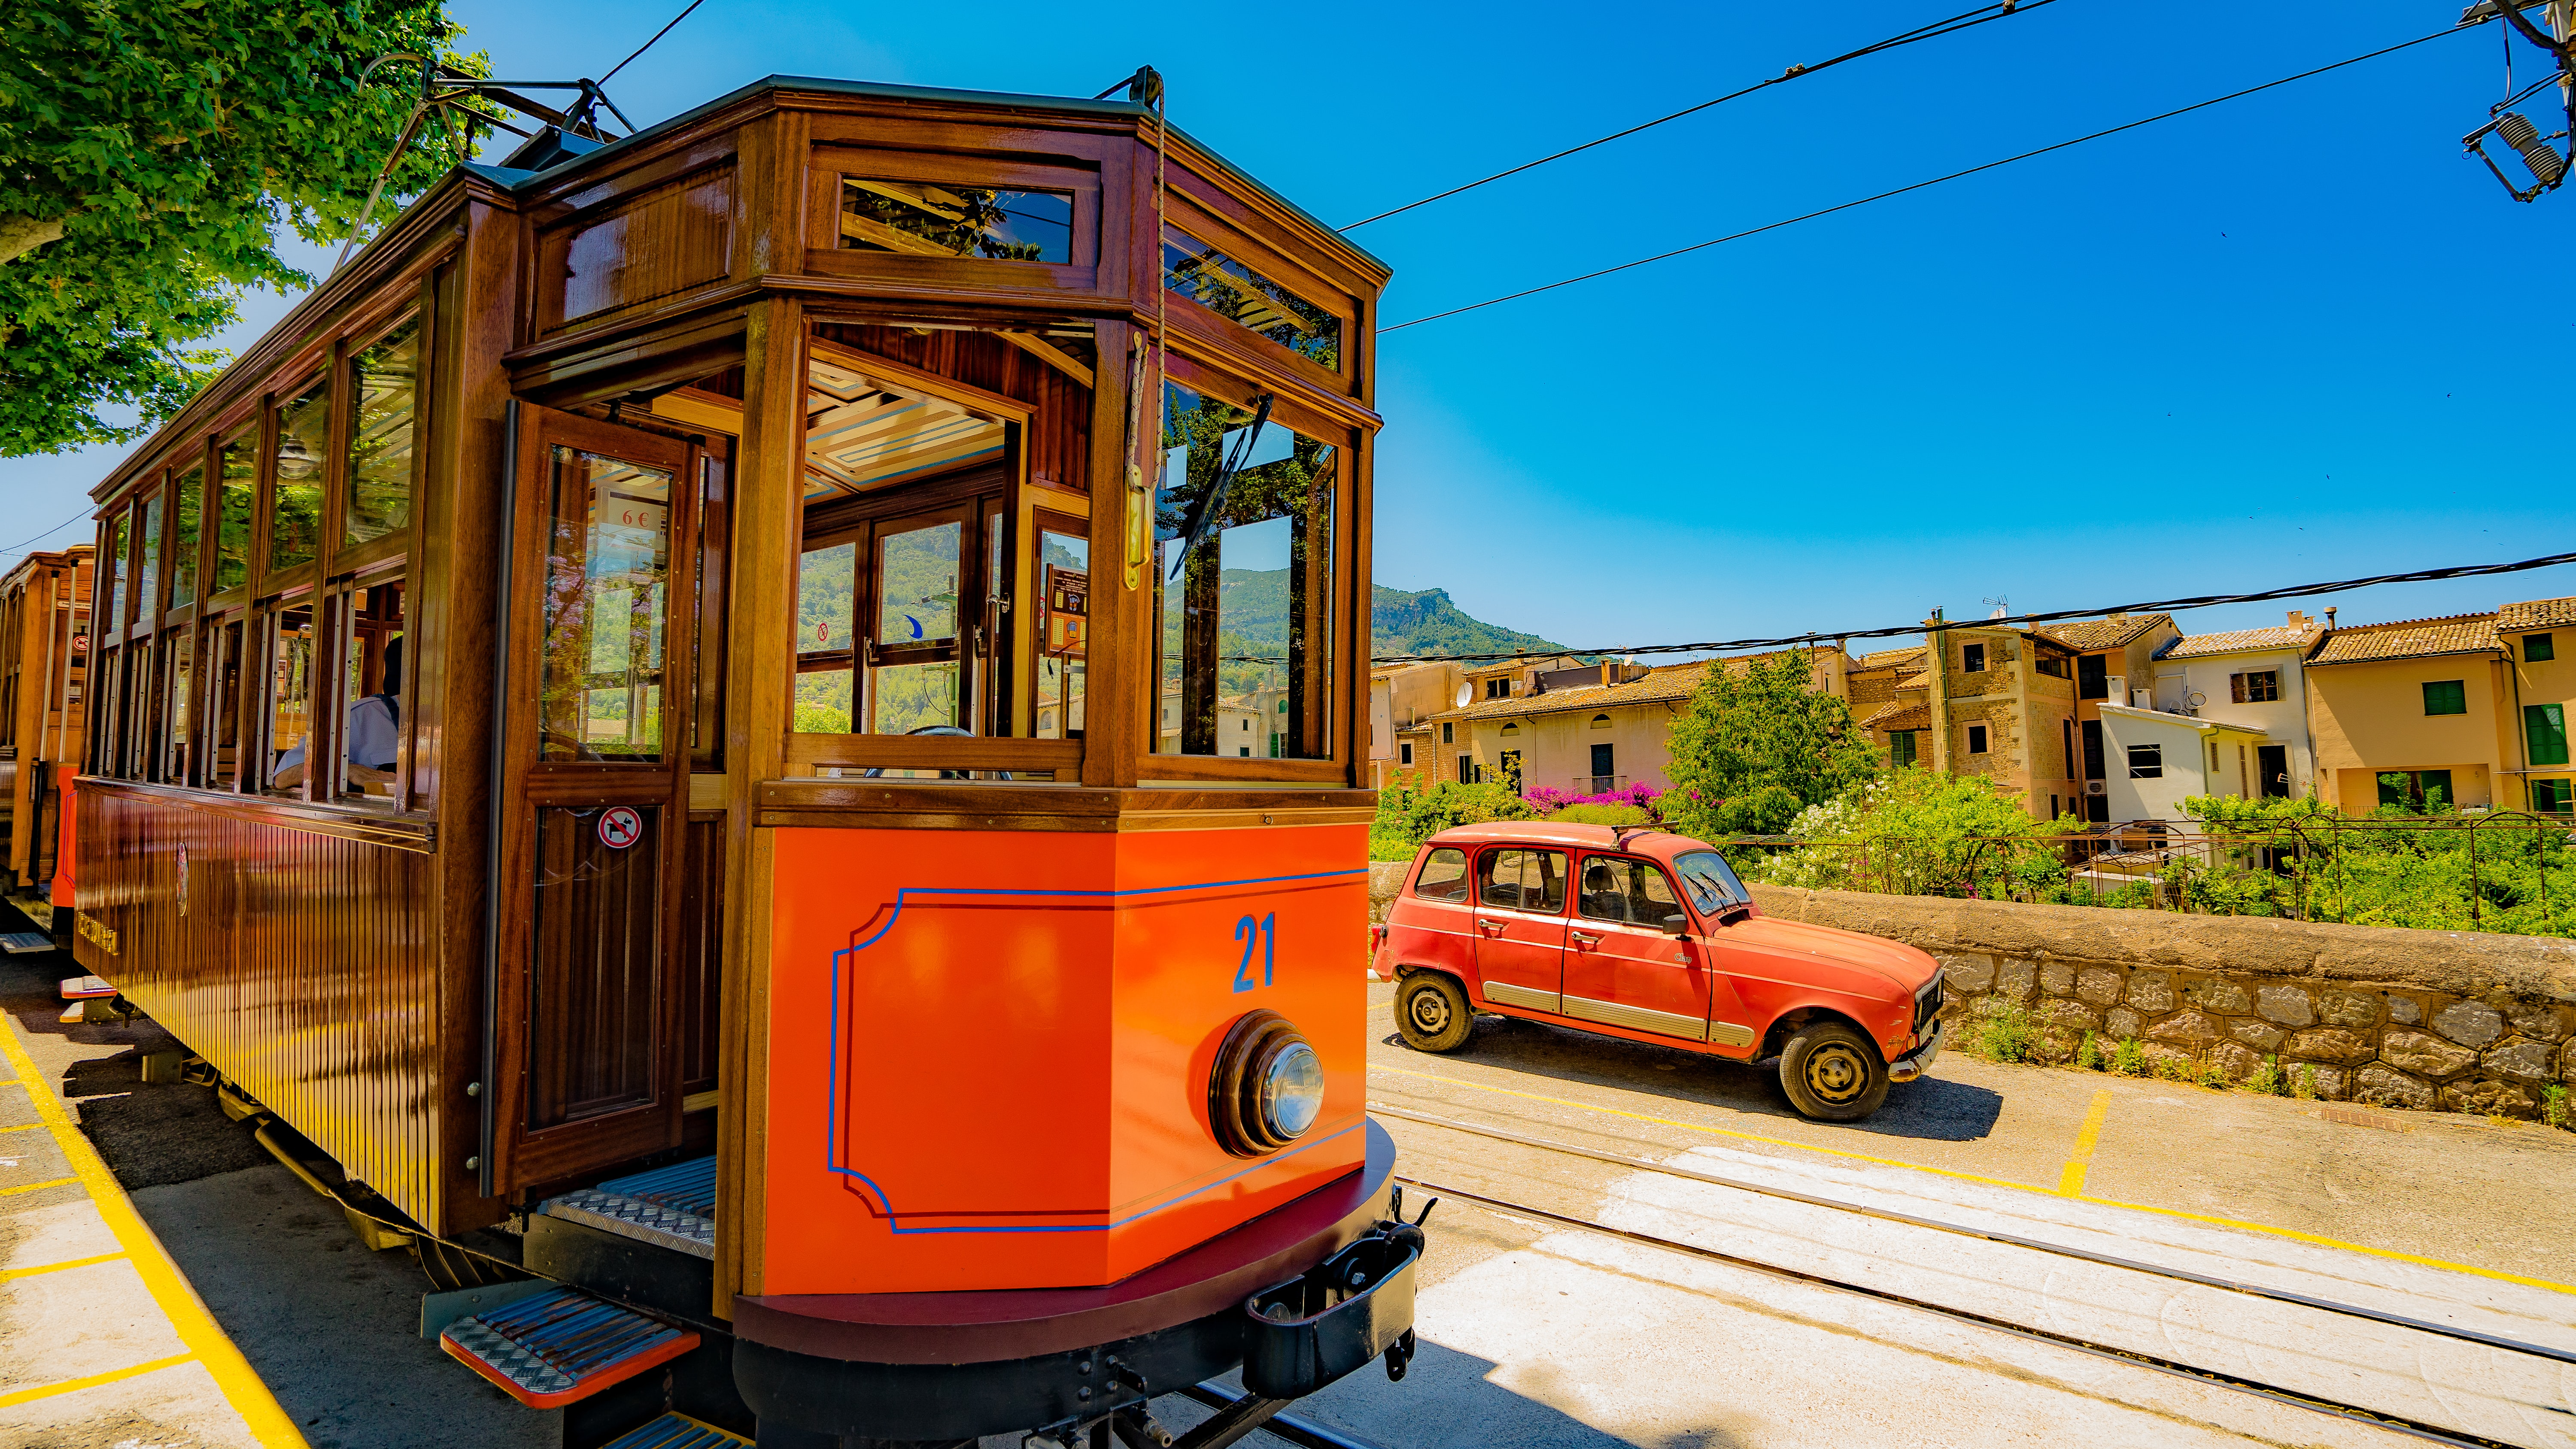 Classic orange street car.